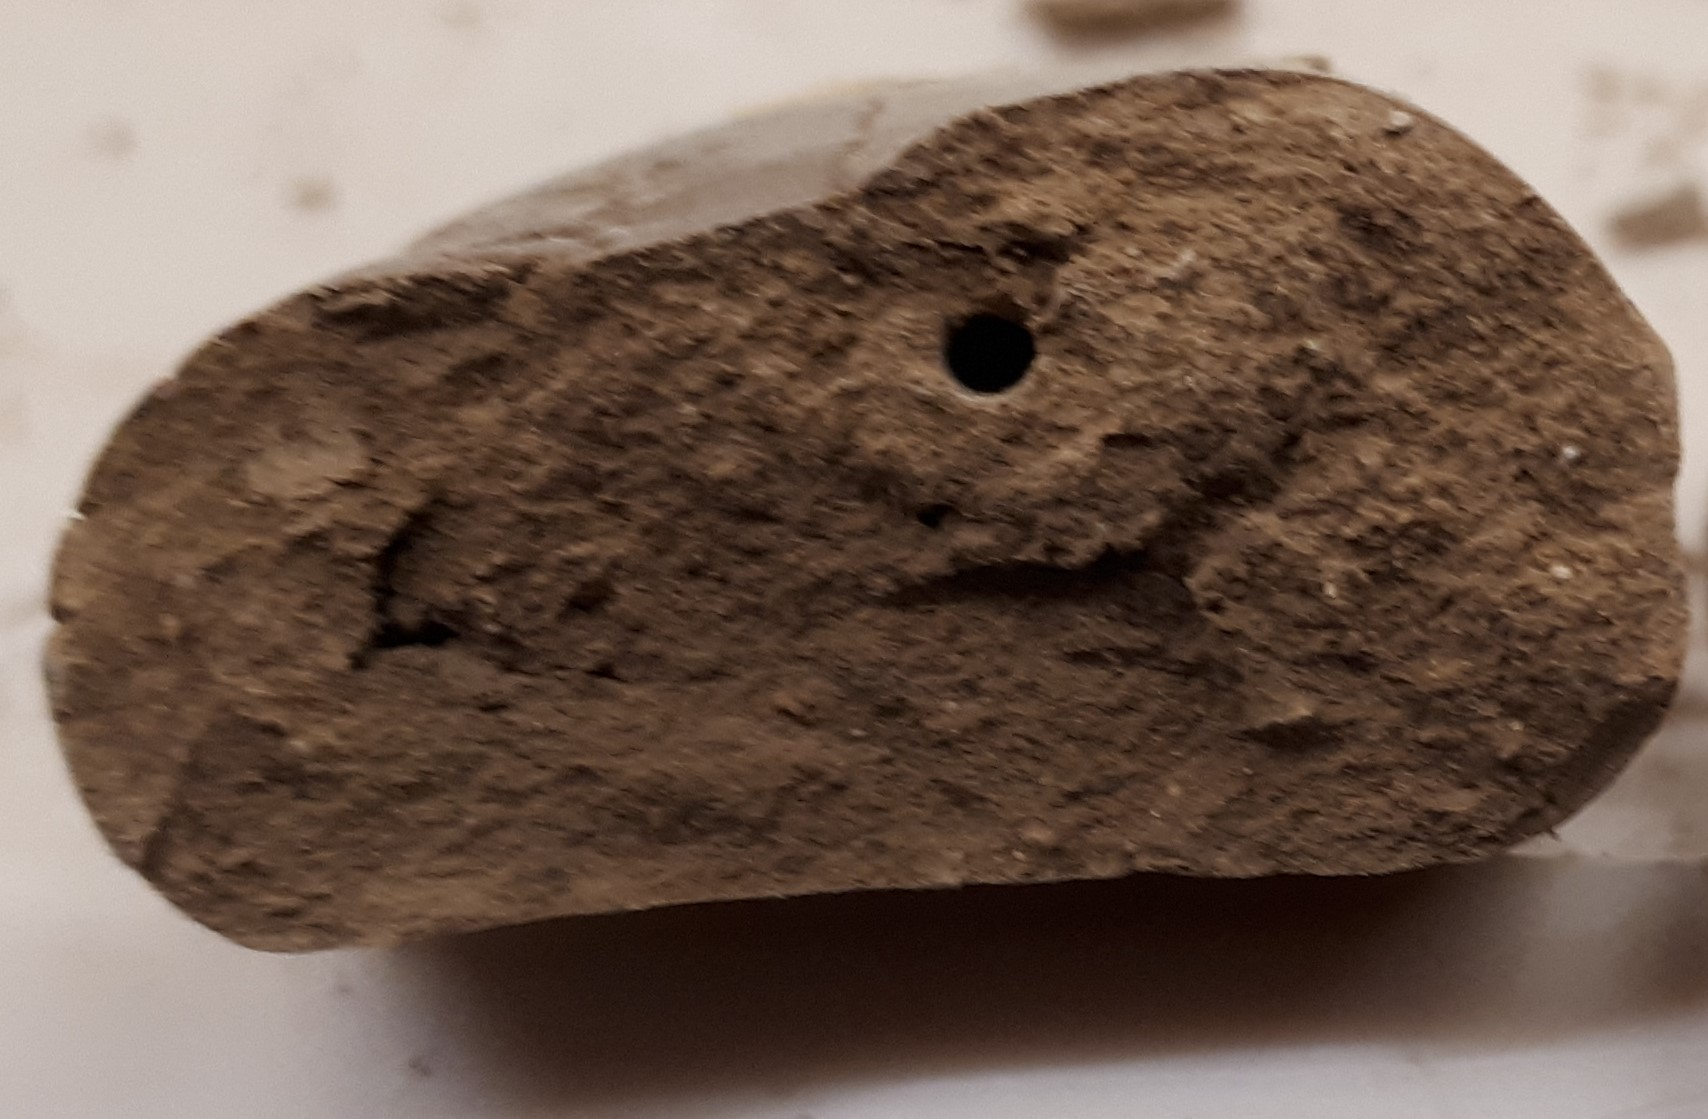 Broken edge of clay tablet, with a round hole in it